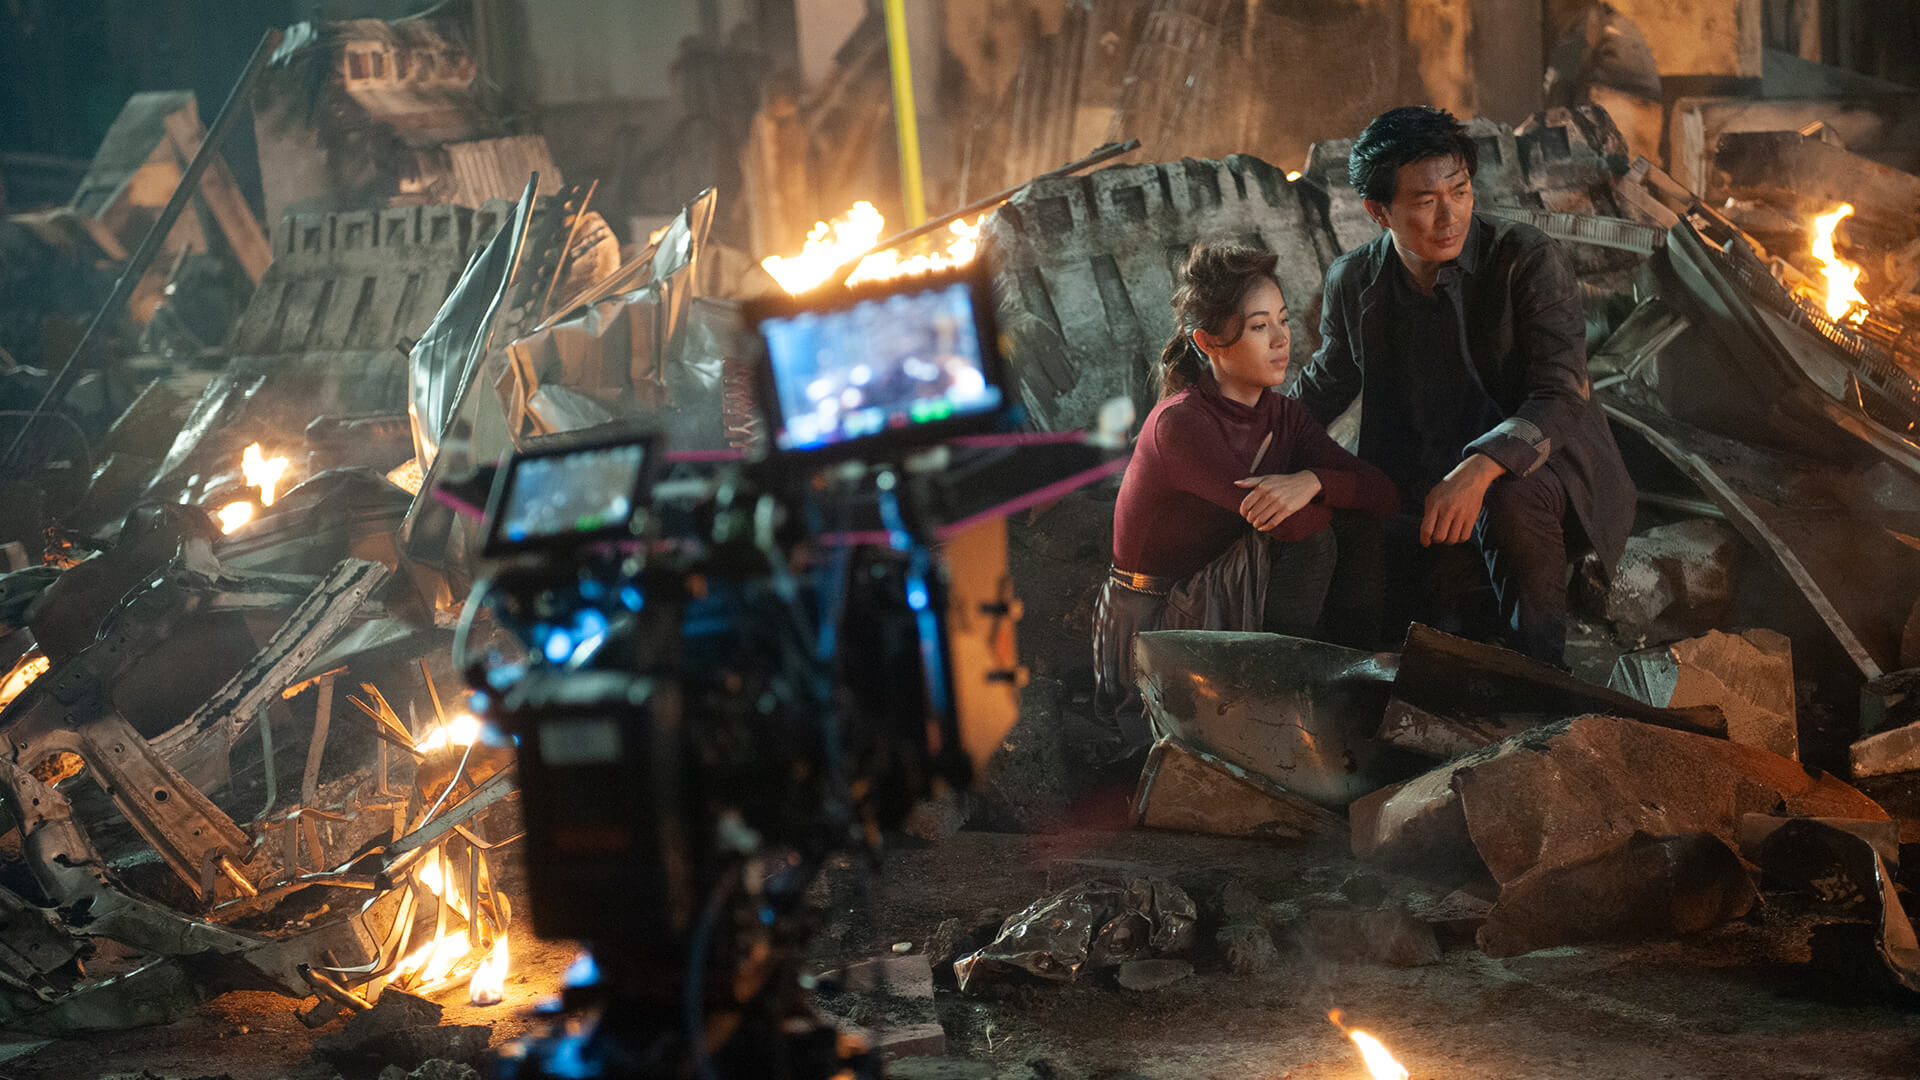 Man and woman sitting in what remains of a destroyed city, a still from the movie Ultimate Energy.